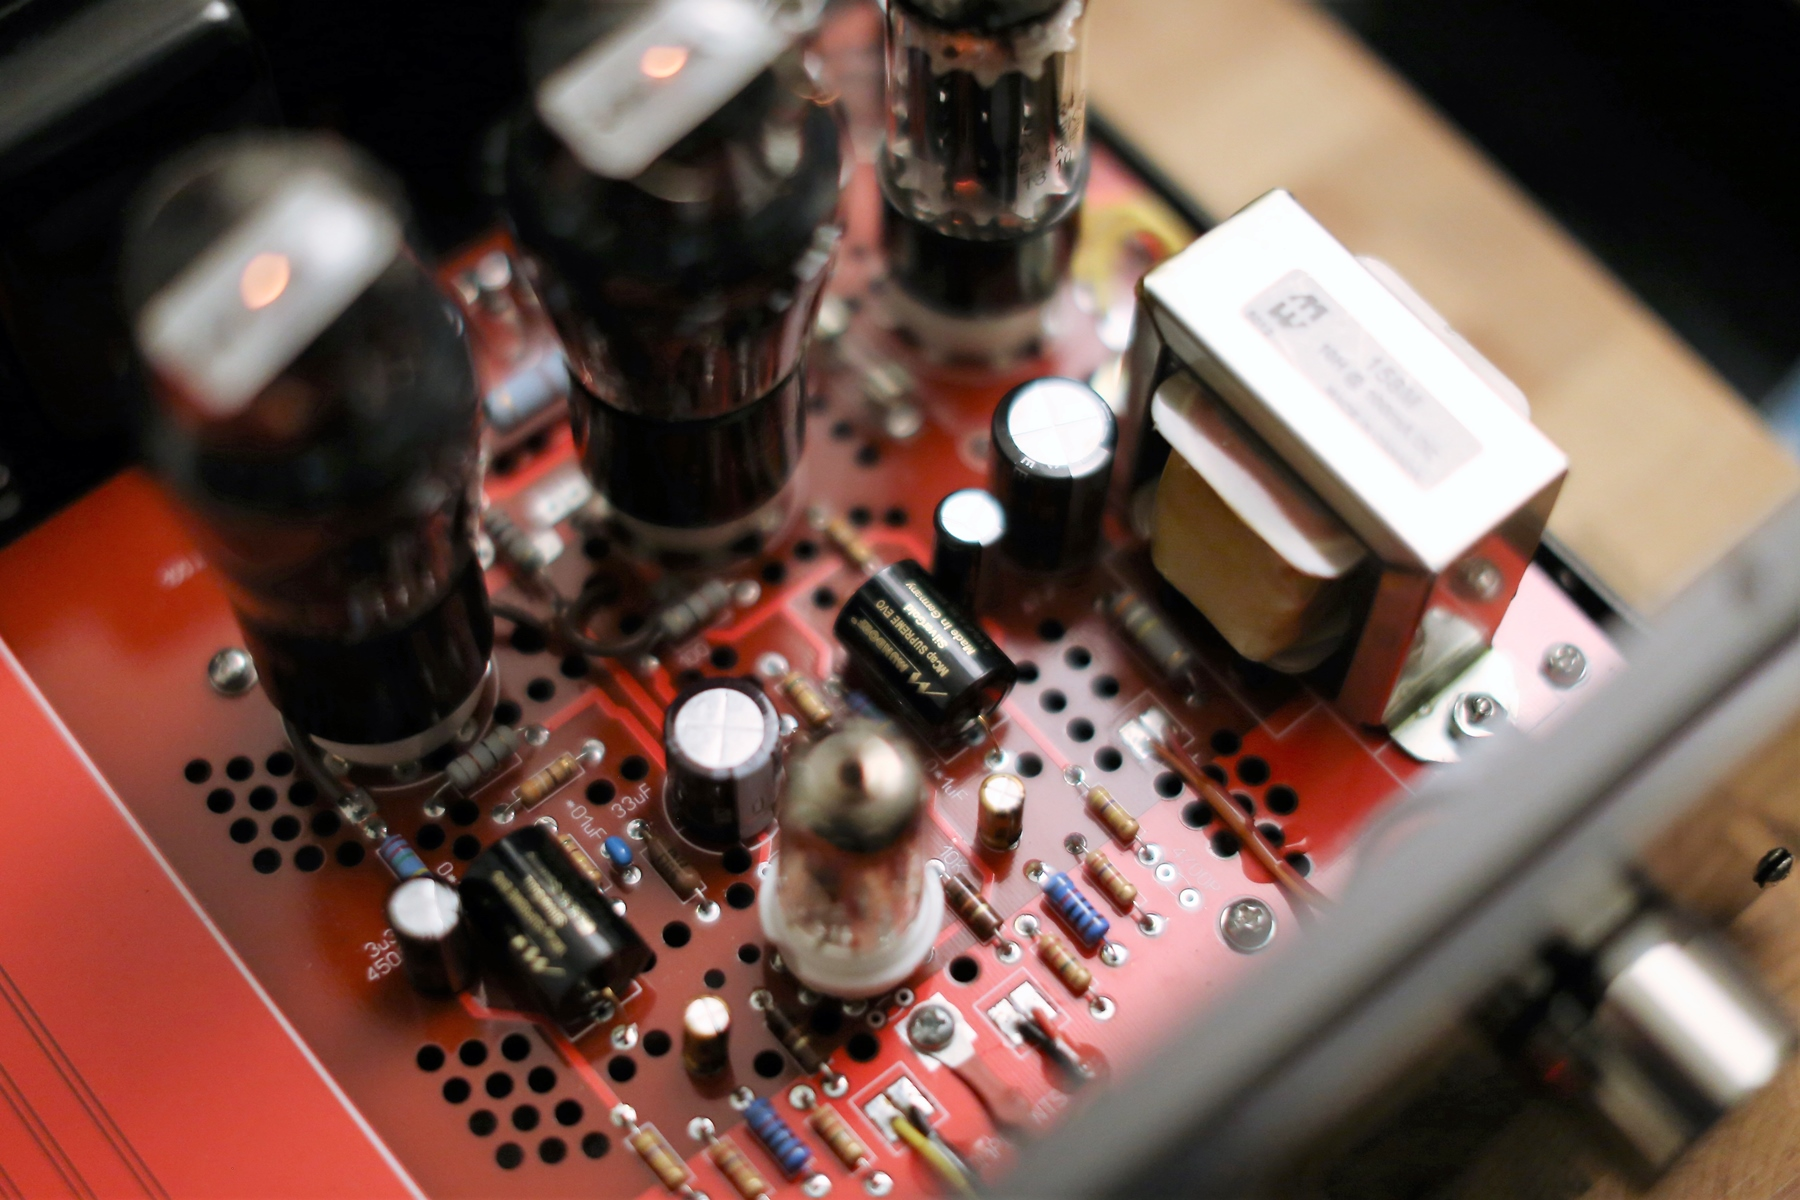 The front end is handled by the most powerful preamp tube - 12AX7, can another tube do this duty? Perhaps not.